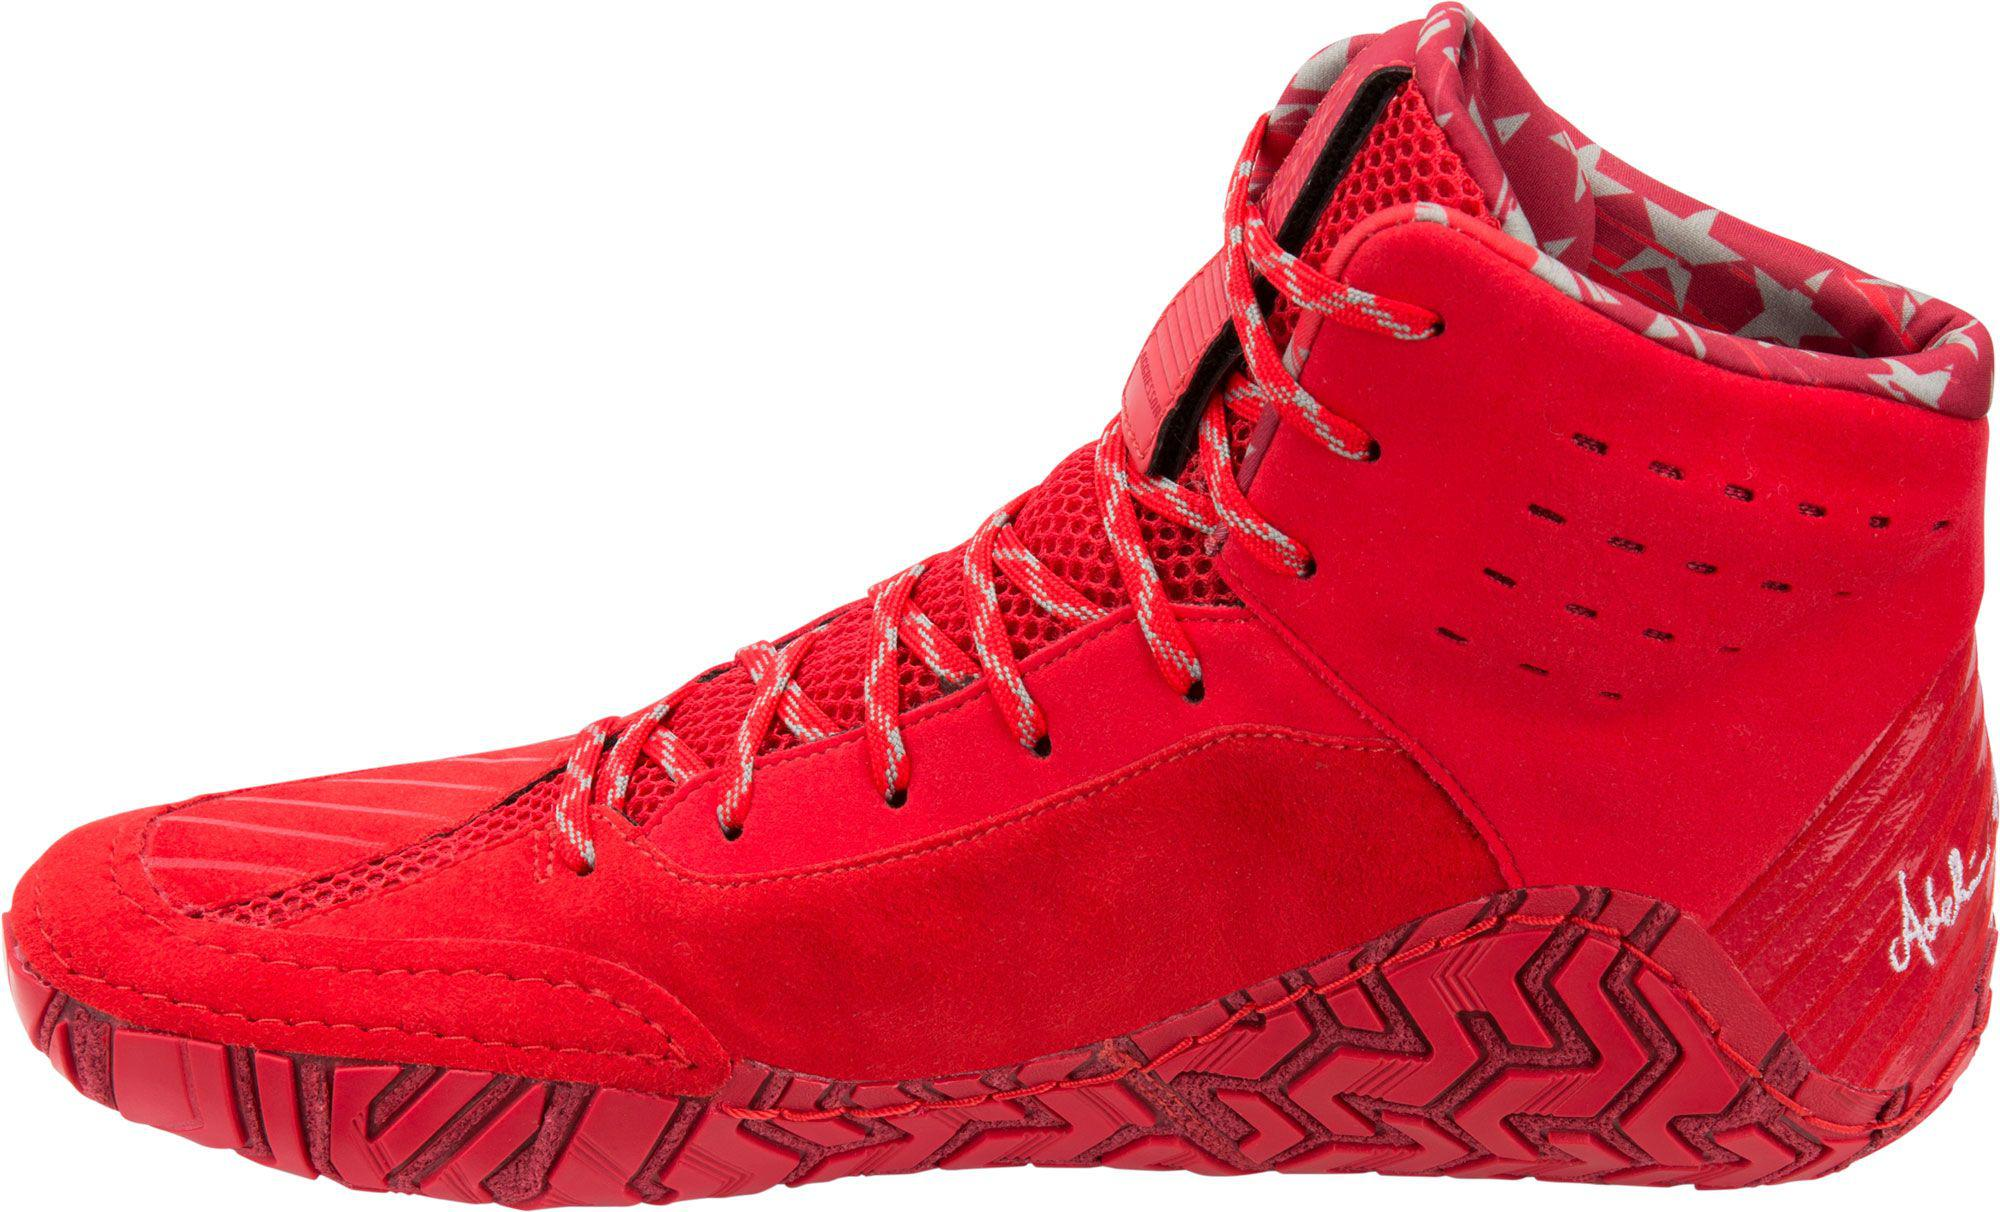 Aggressor 4 Le Full Sole Shoes in Red